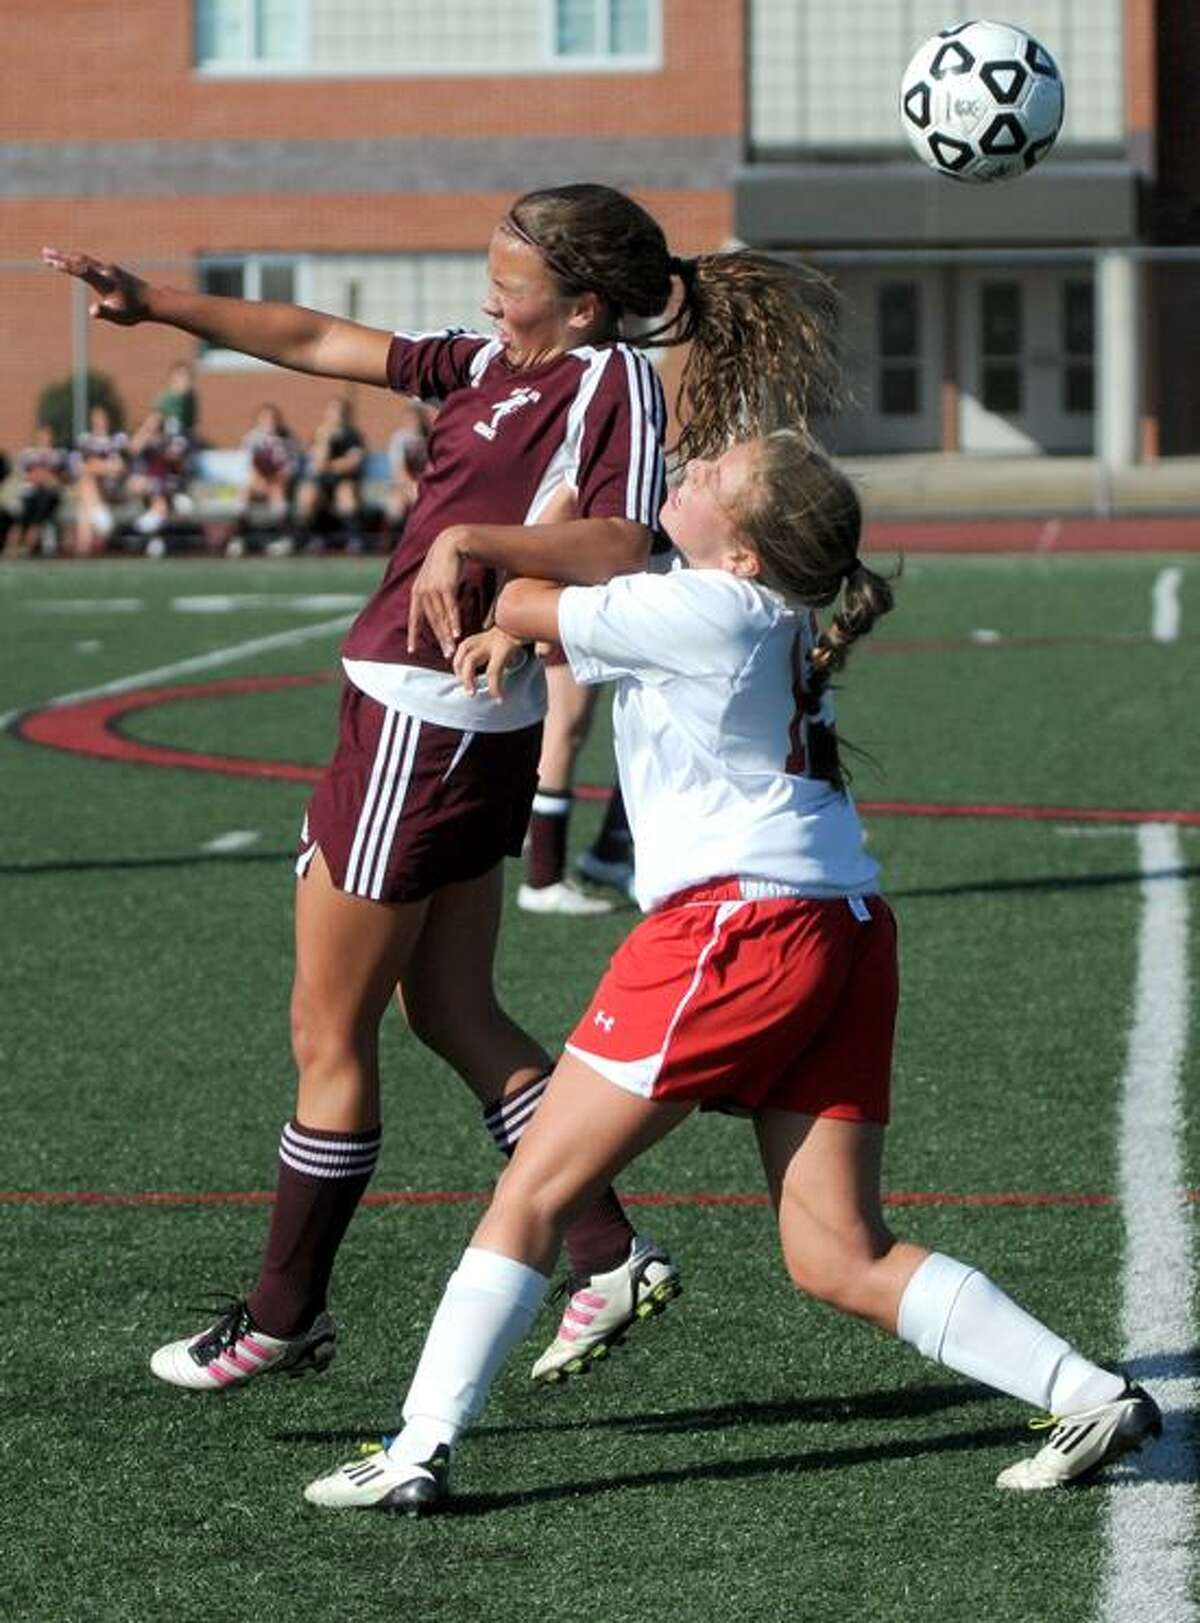 Maggie Sullivan of North Haven High School, left, and Hannah Milles of Branford High School battle for the ball during first half soccer action at Branford. Tuesday September 25, 2012. Photo by Peter Hvizdak / New Haven Register